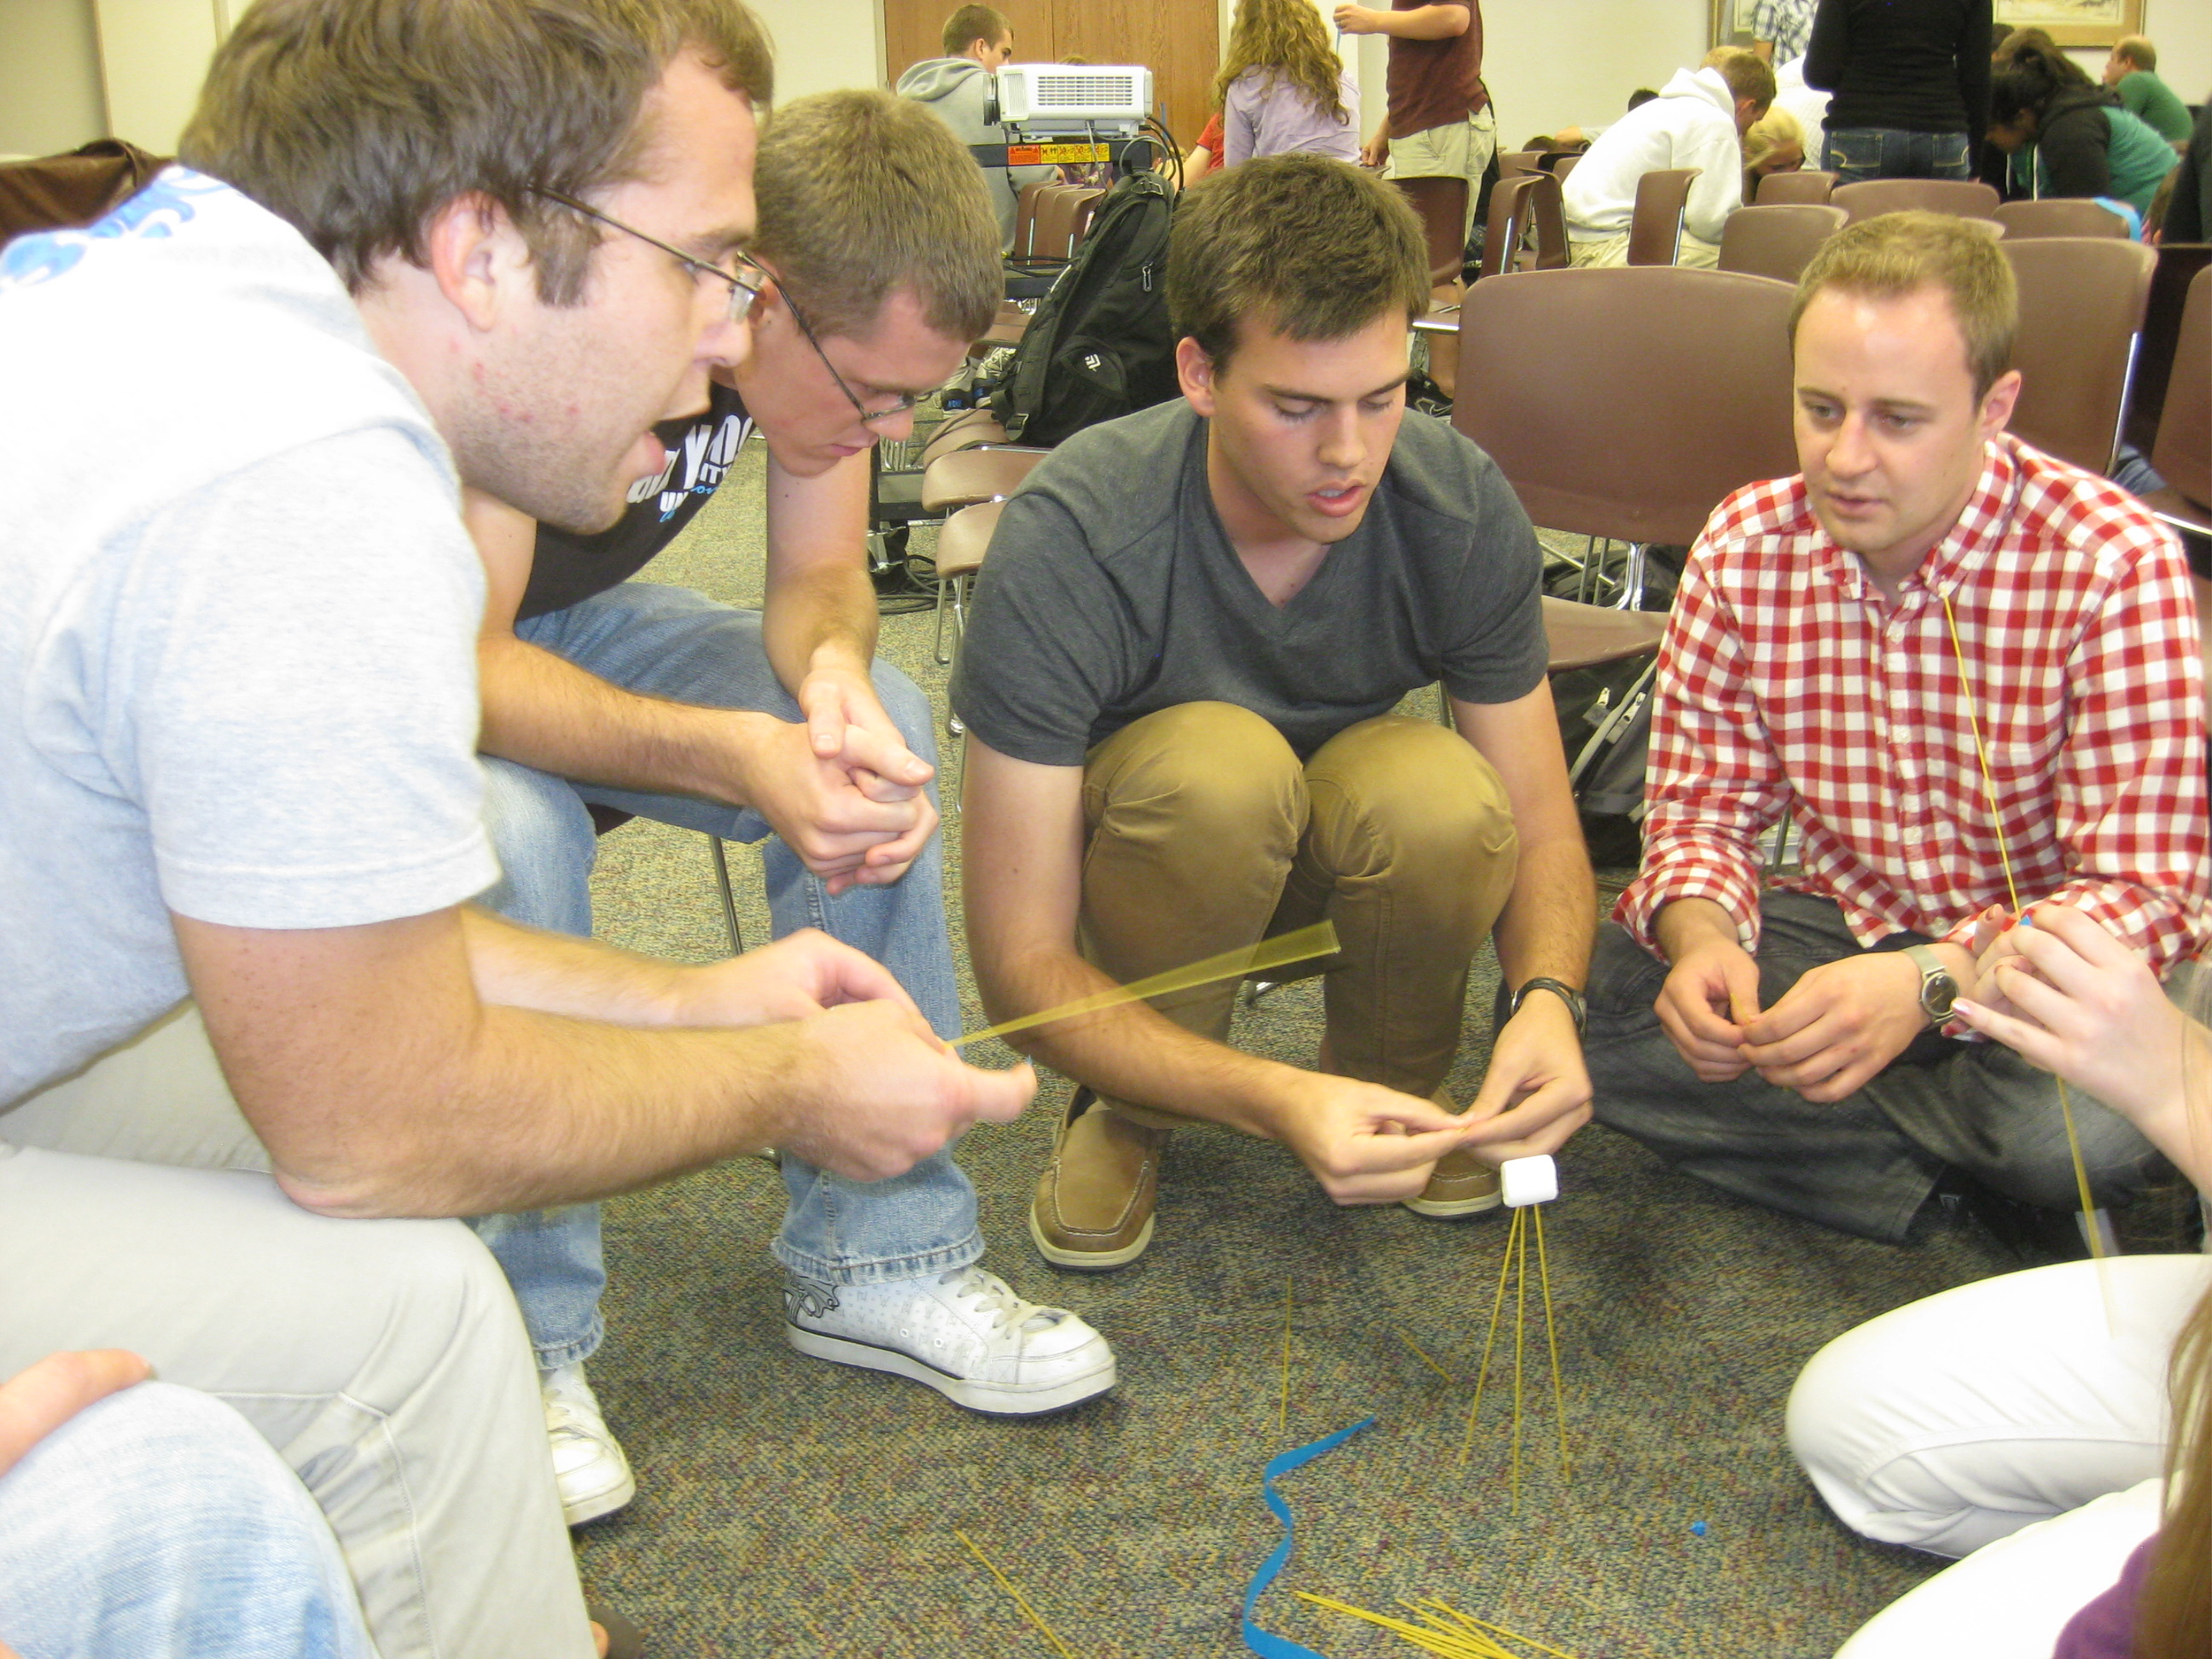 Students practice innovative skills by building structures using only spaghetti, a marshmallow and tape.